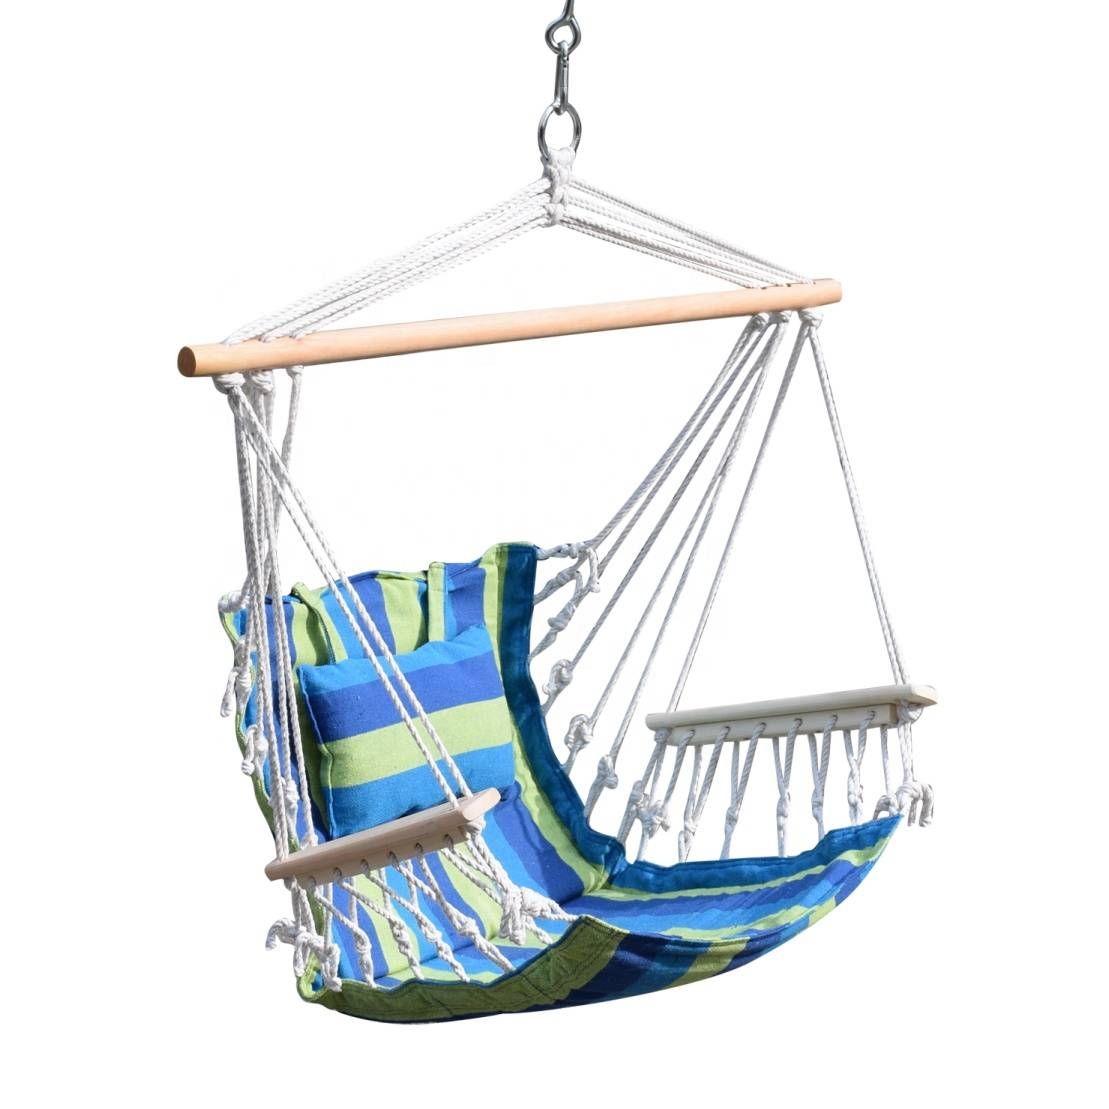 Polycotton hammock chair with woodbar Hammock swing chair